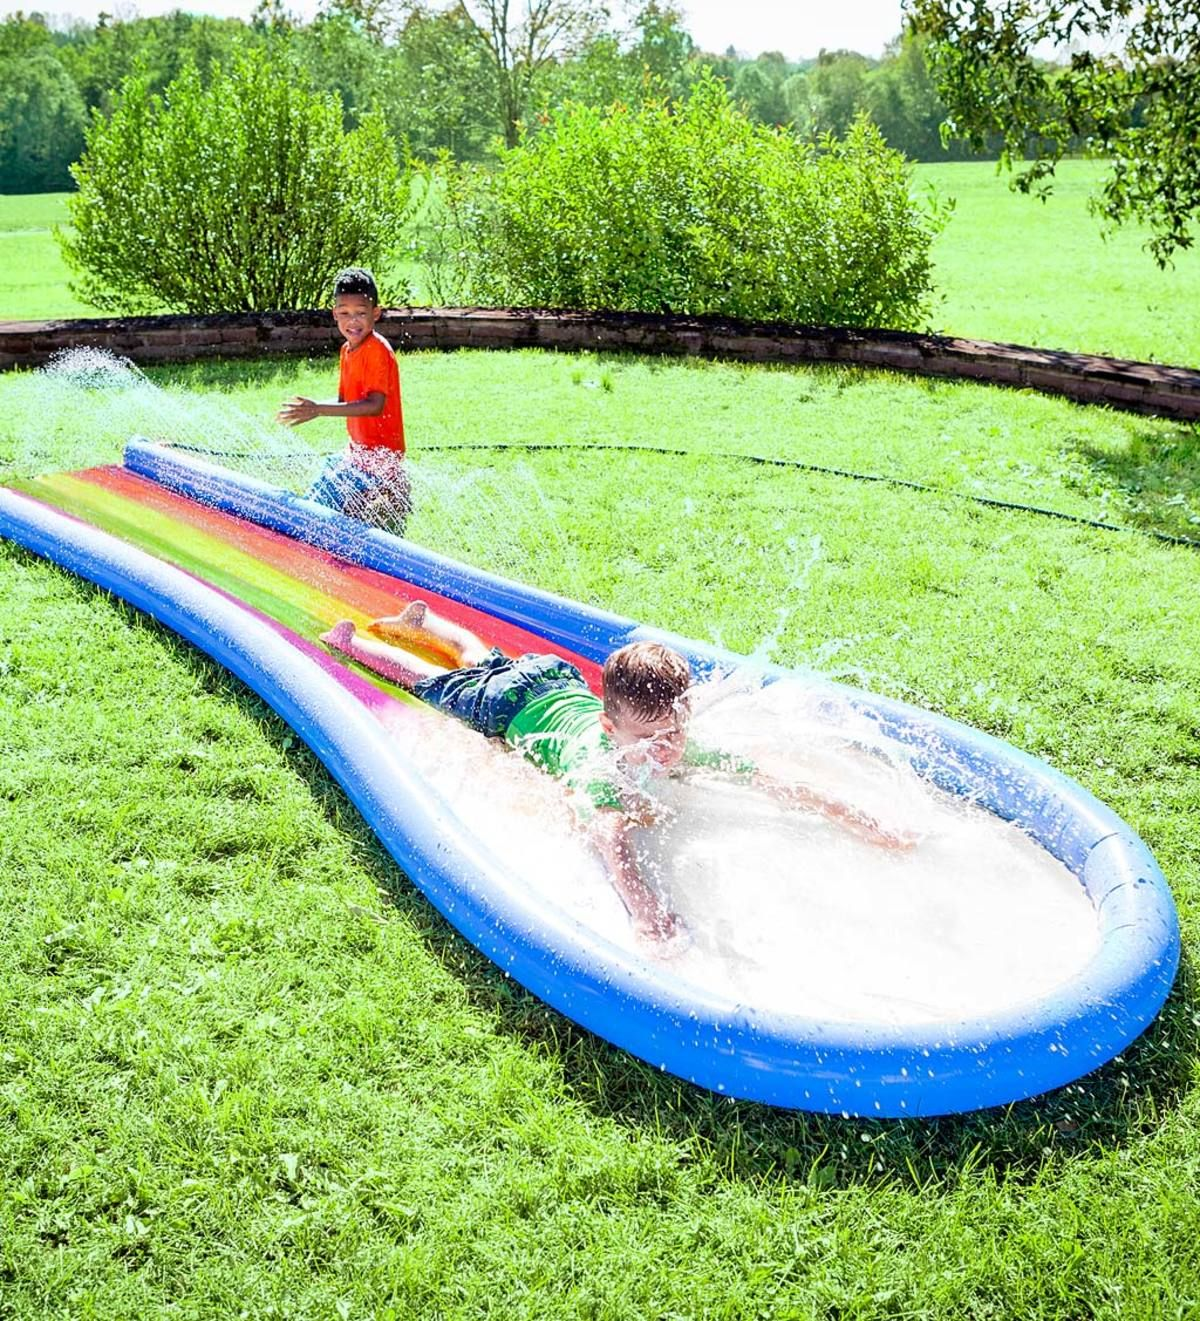 Backyard summertime fun at its best! Inflate this rainbow ...